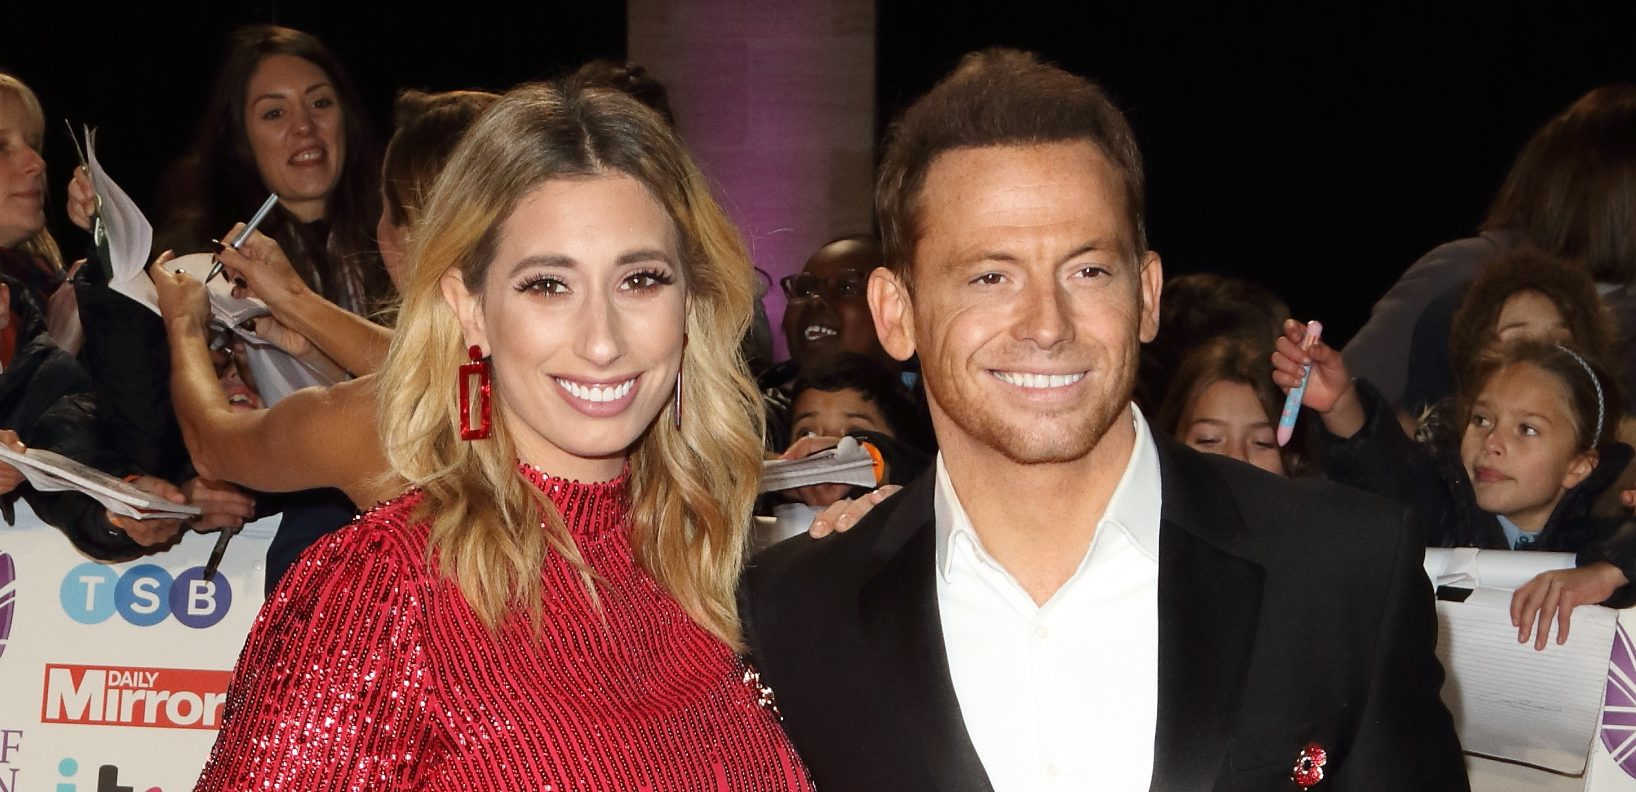 Stacey Solomon and Joe Swash reveal their hilarious family Christmas card